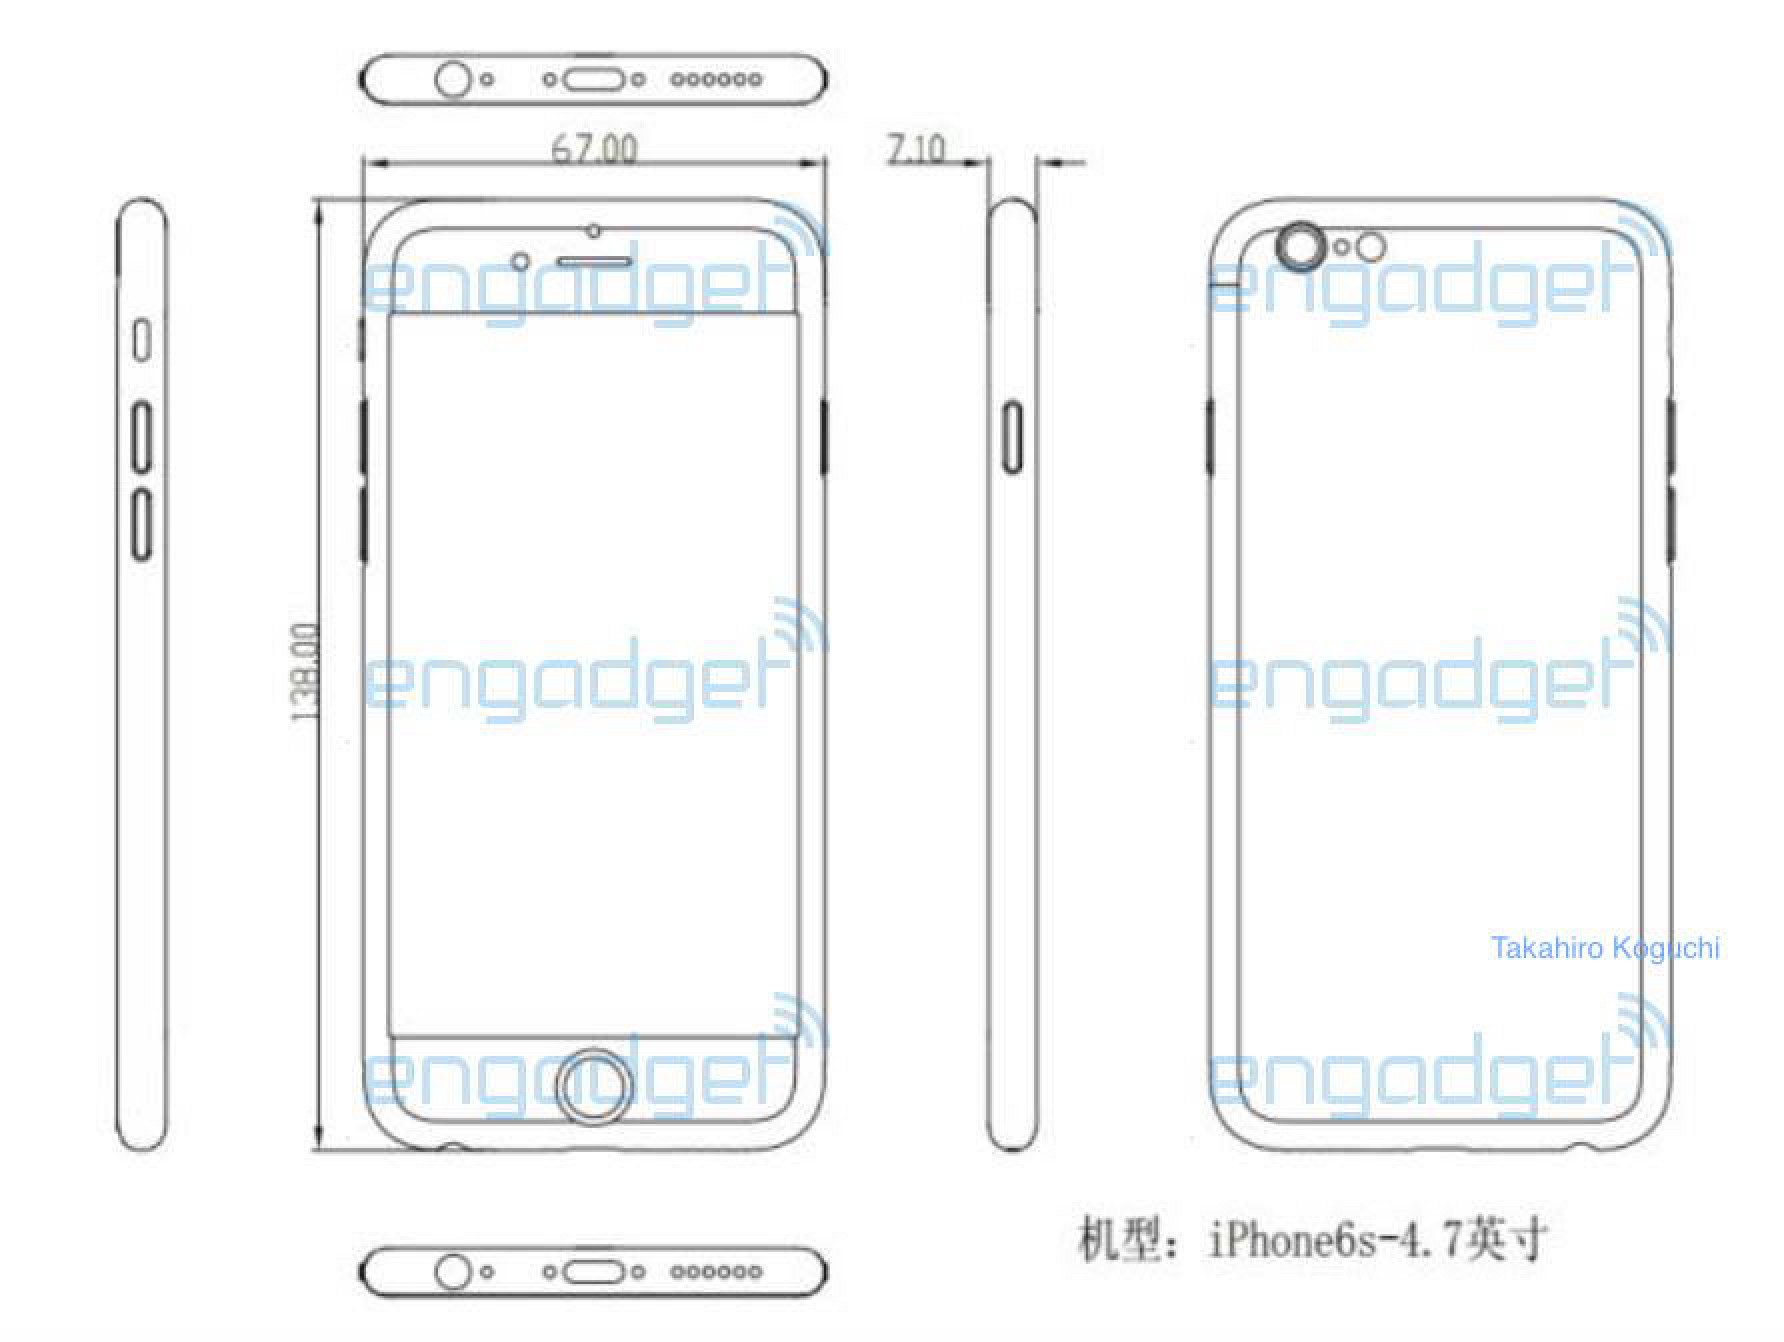 Purported Schematic Suggests 'iPhone 6s' Could Be Slightly ... on